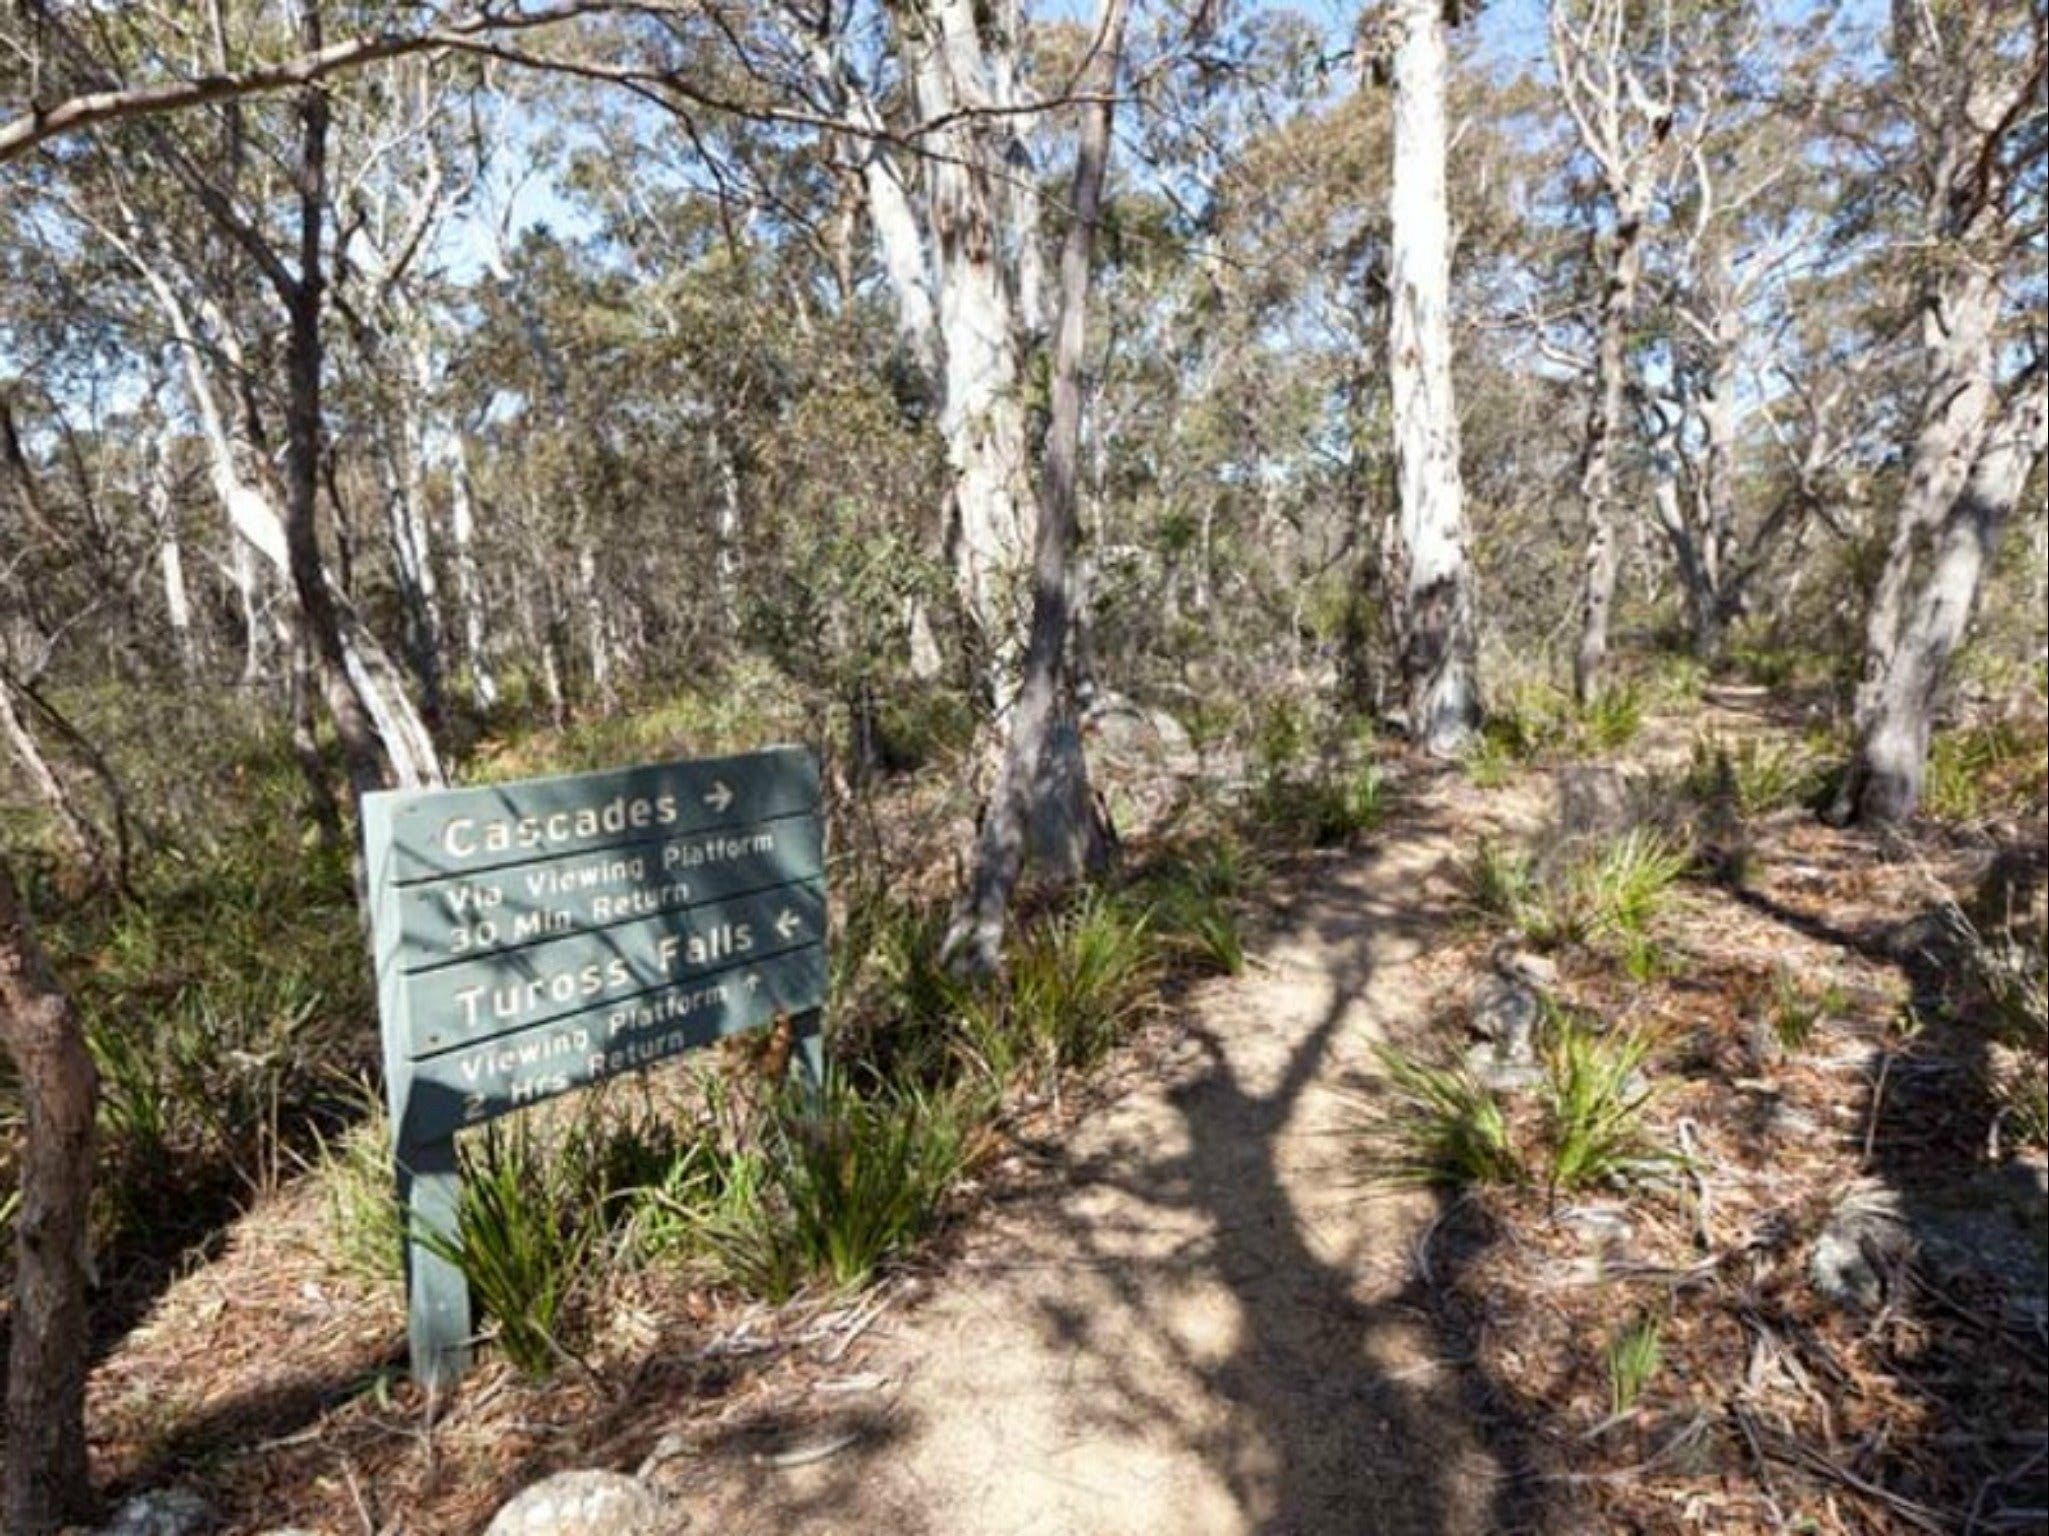 Cascades walking track and viewing platform - Tourism Caloundra